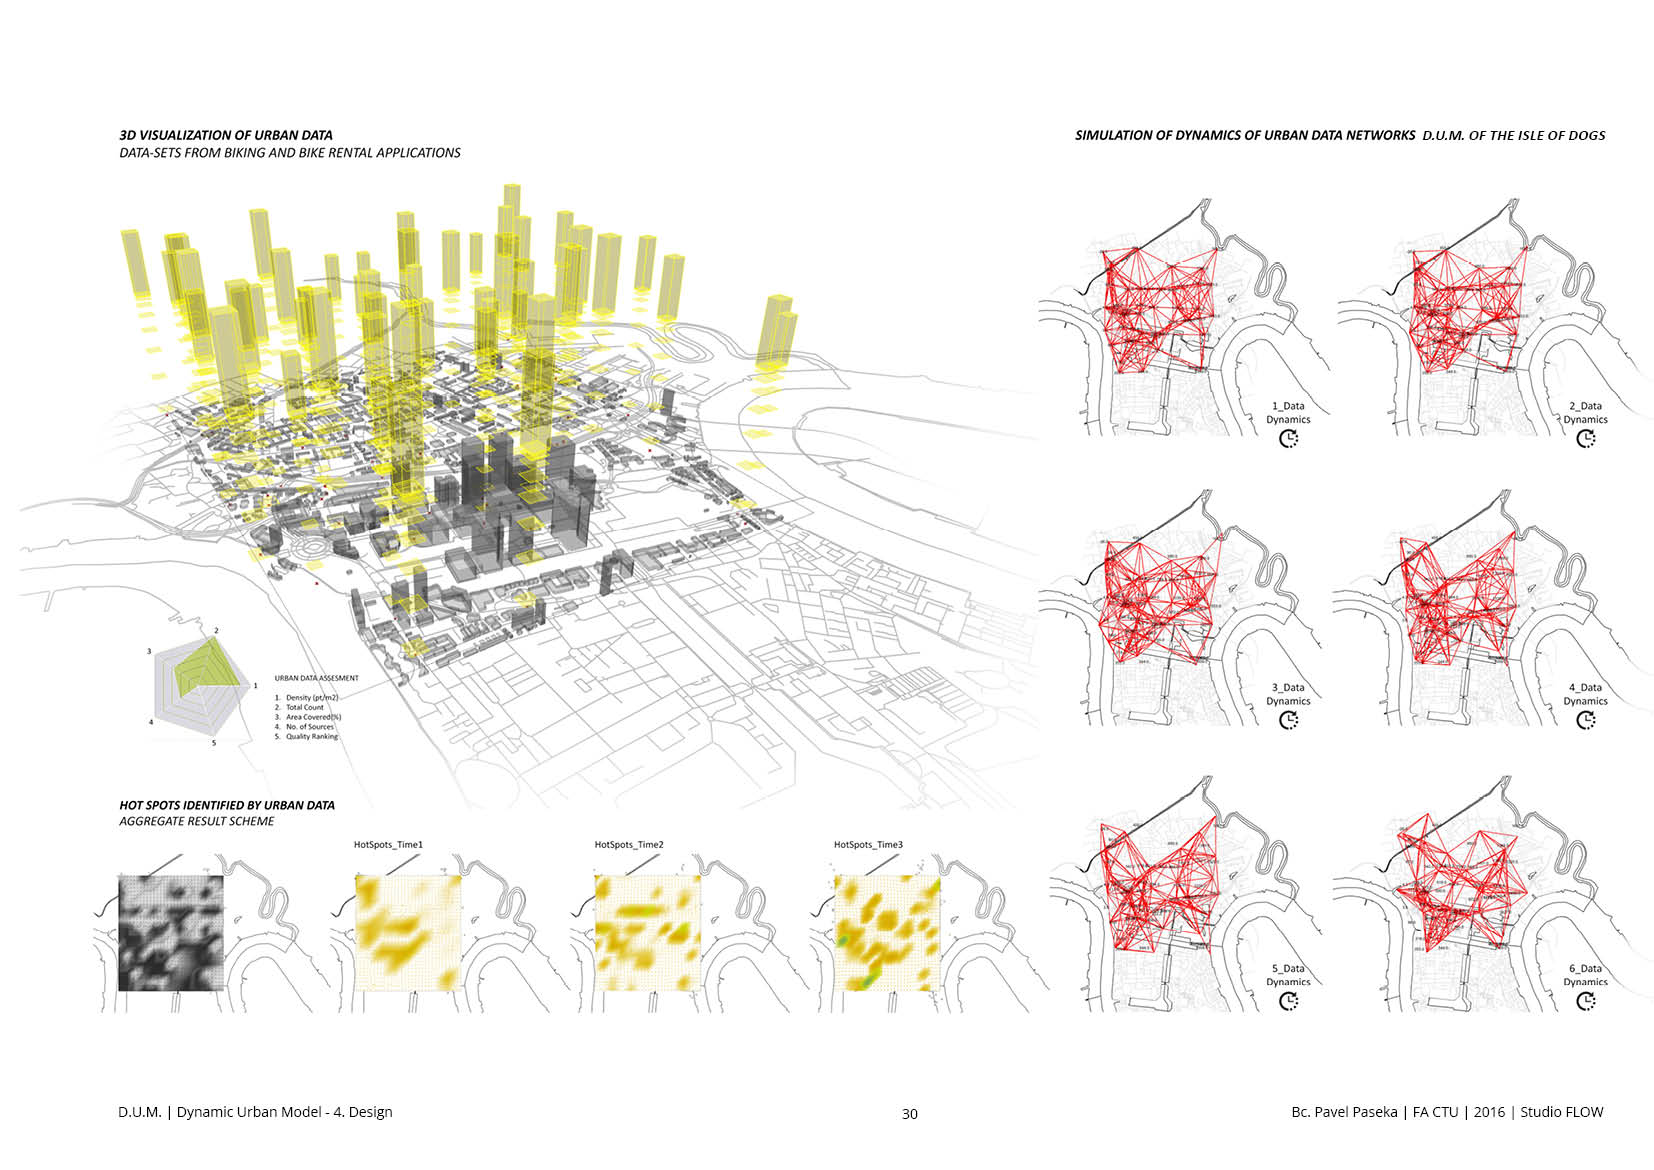 Pavel Paseka | D.U.M. - Dynamic Urban Model (Diploma Thesis)